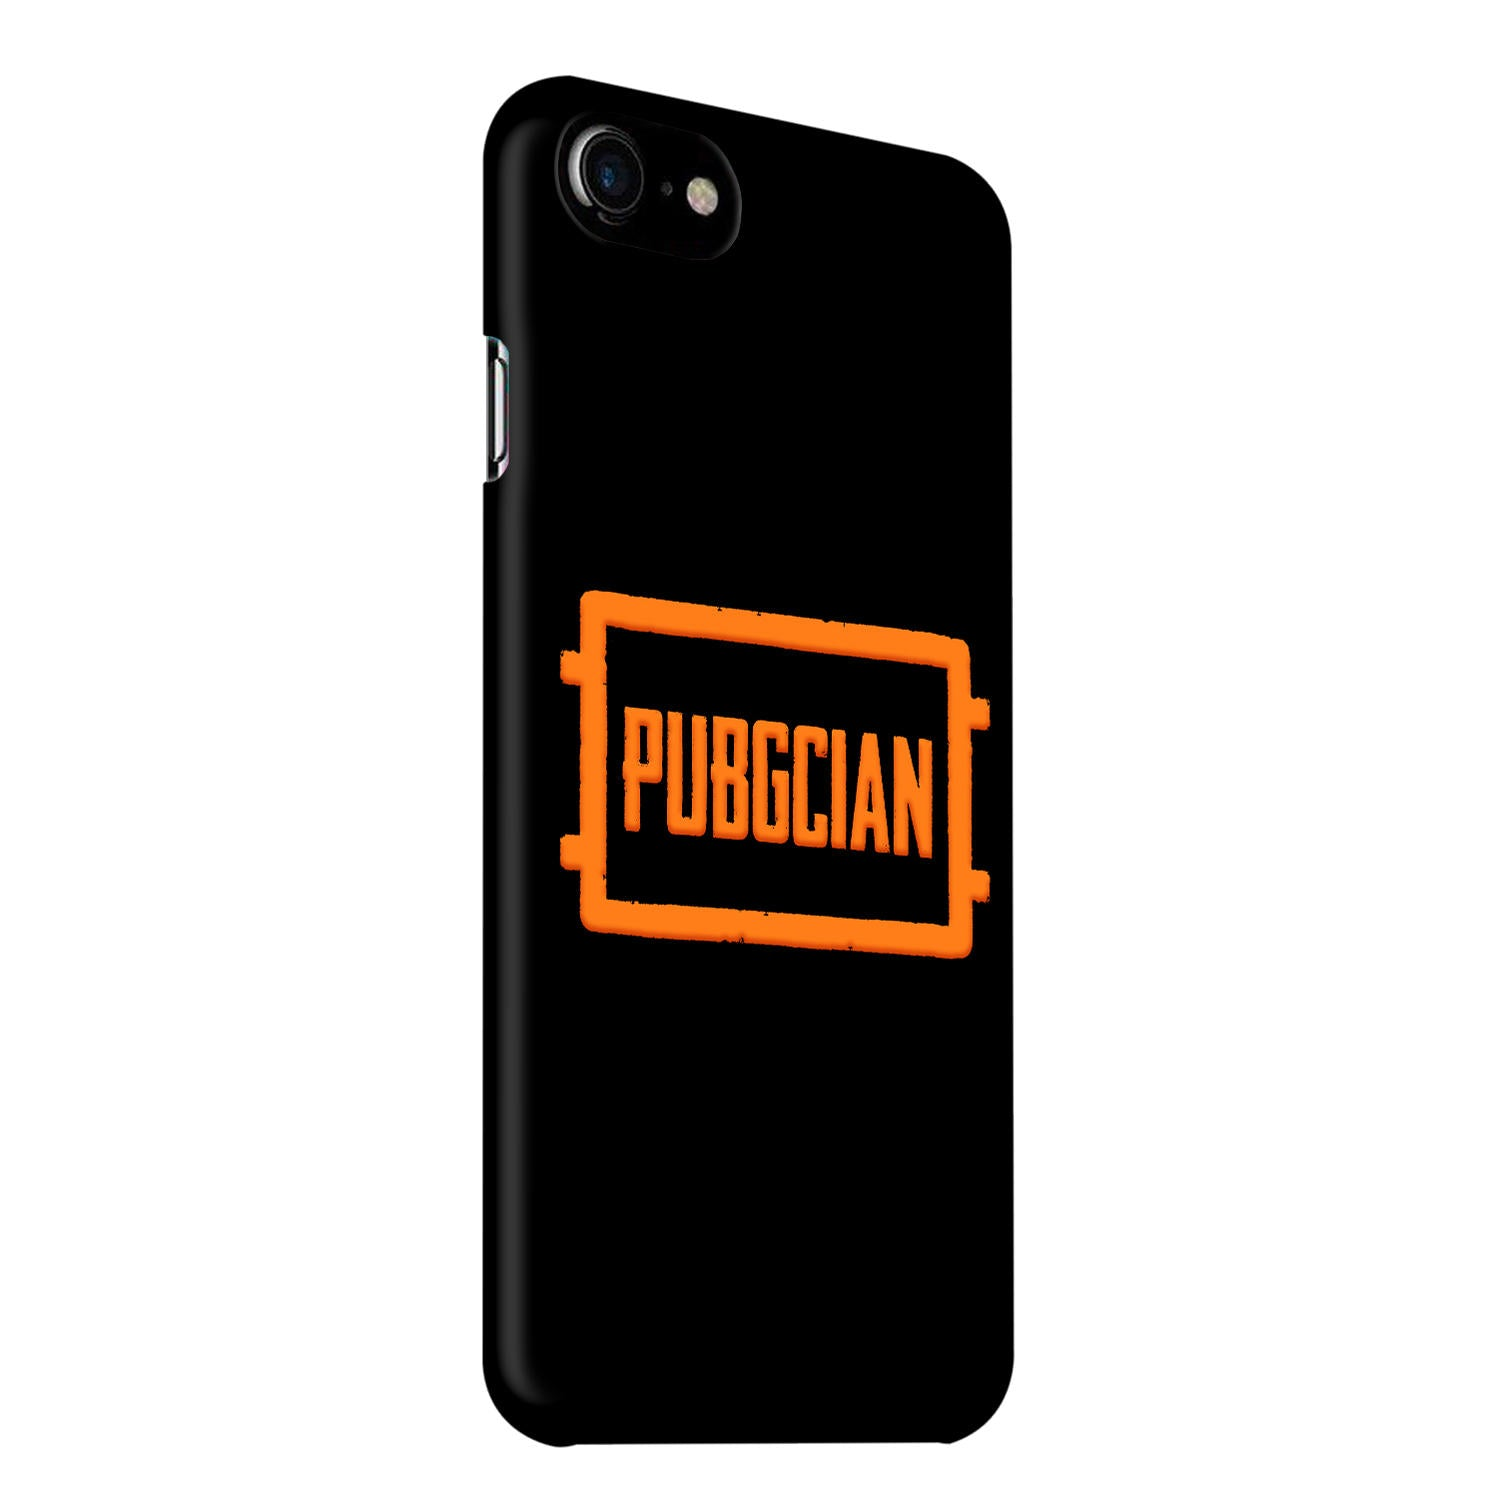 Pubgcian For Game Lovers iPhone 7 Mobile Cover Case - MADANYU